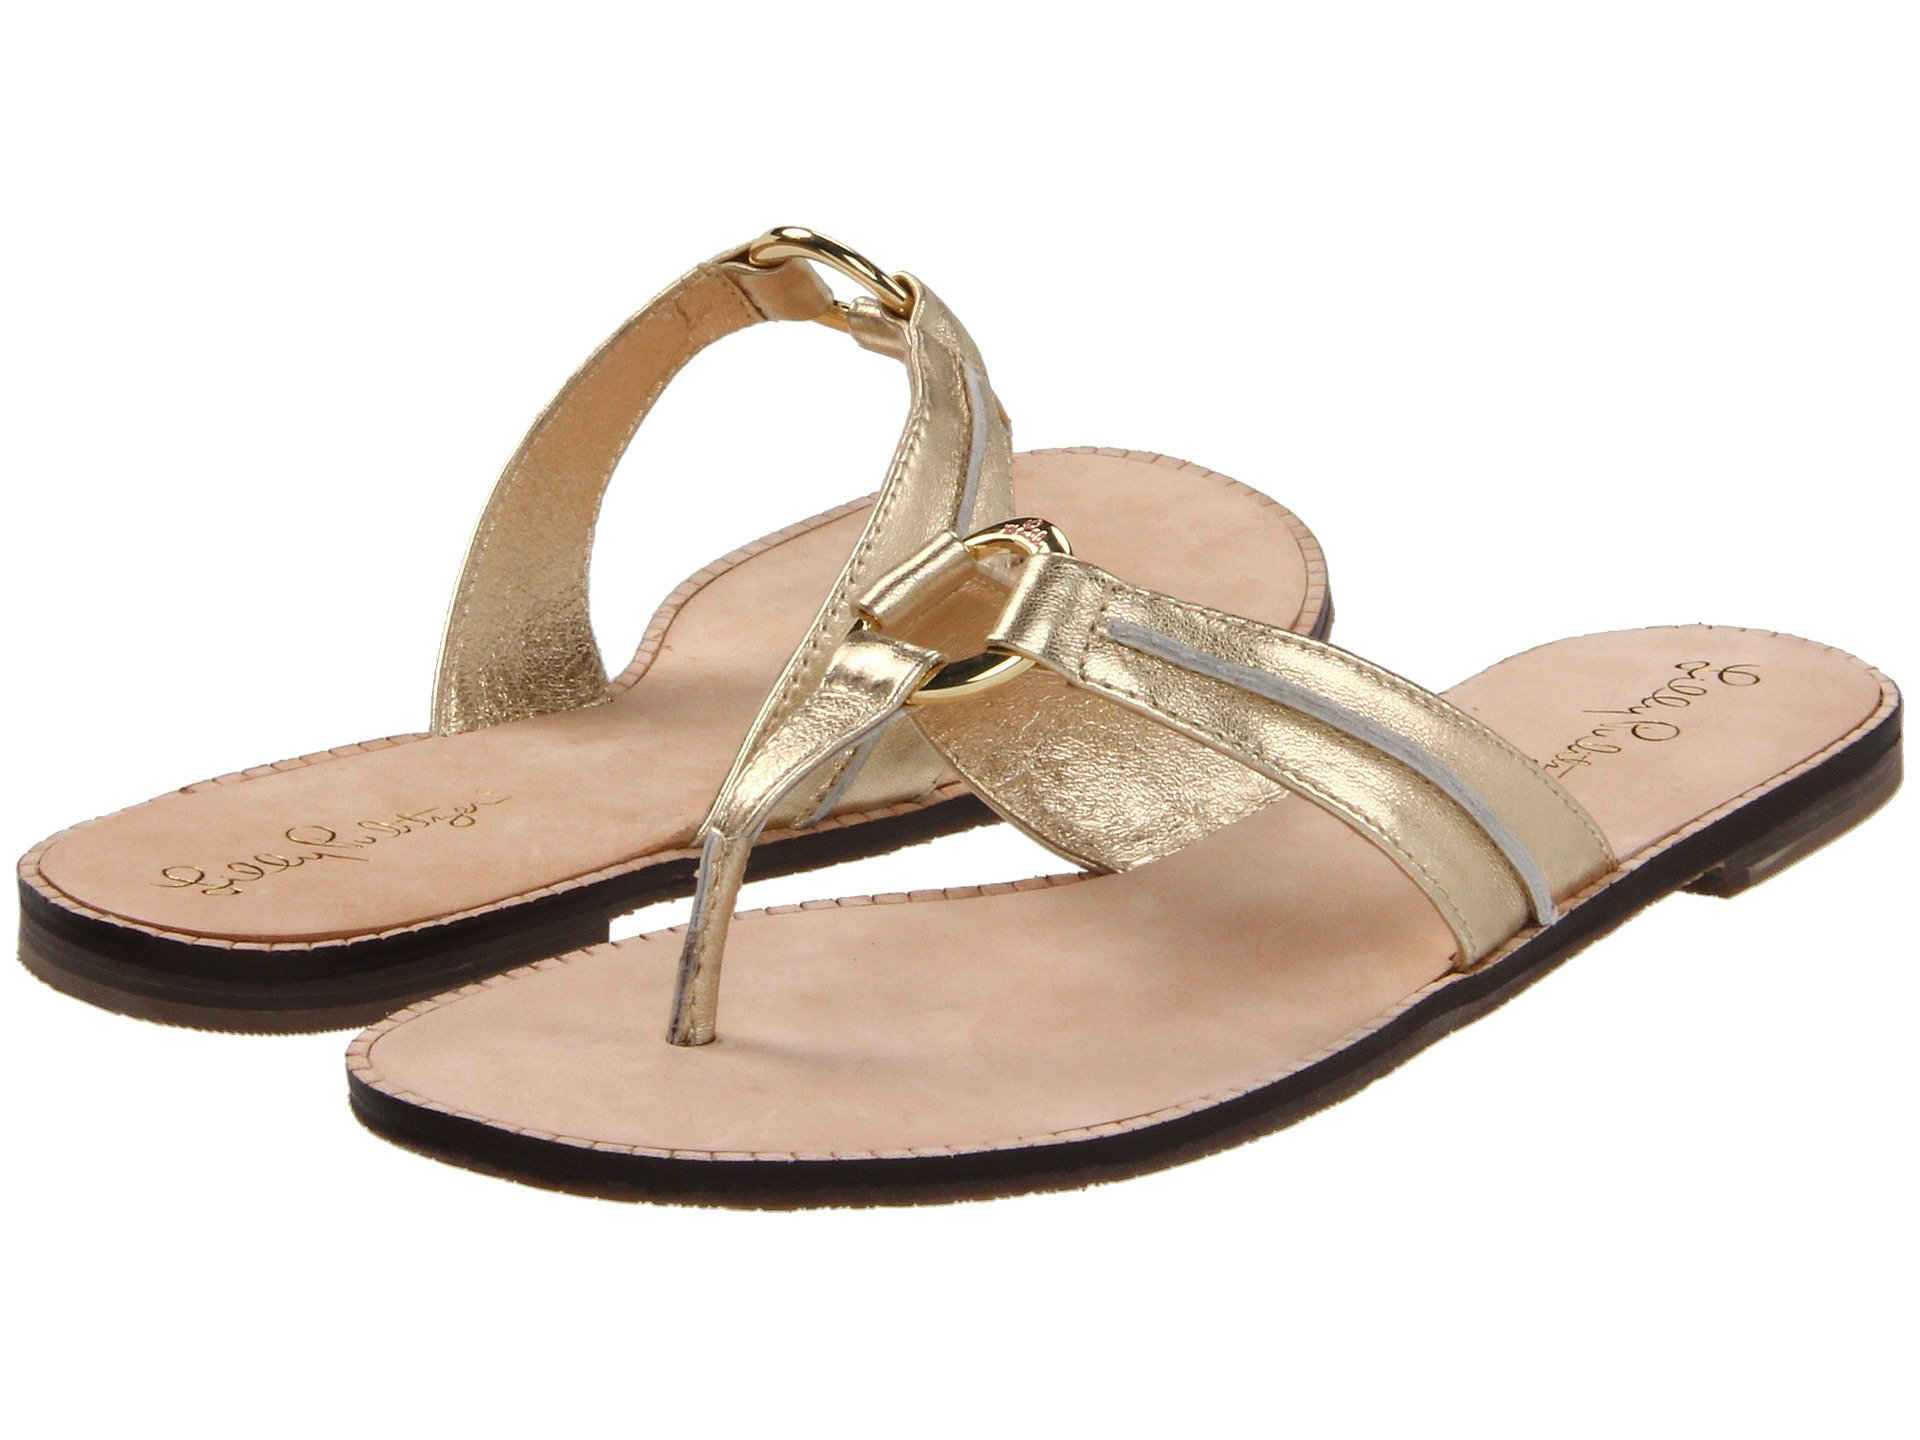 4367ba8587da Women s Lilly Pulitzer Sandals + FREE SHIPPING